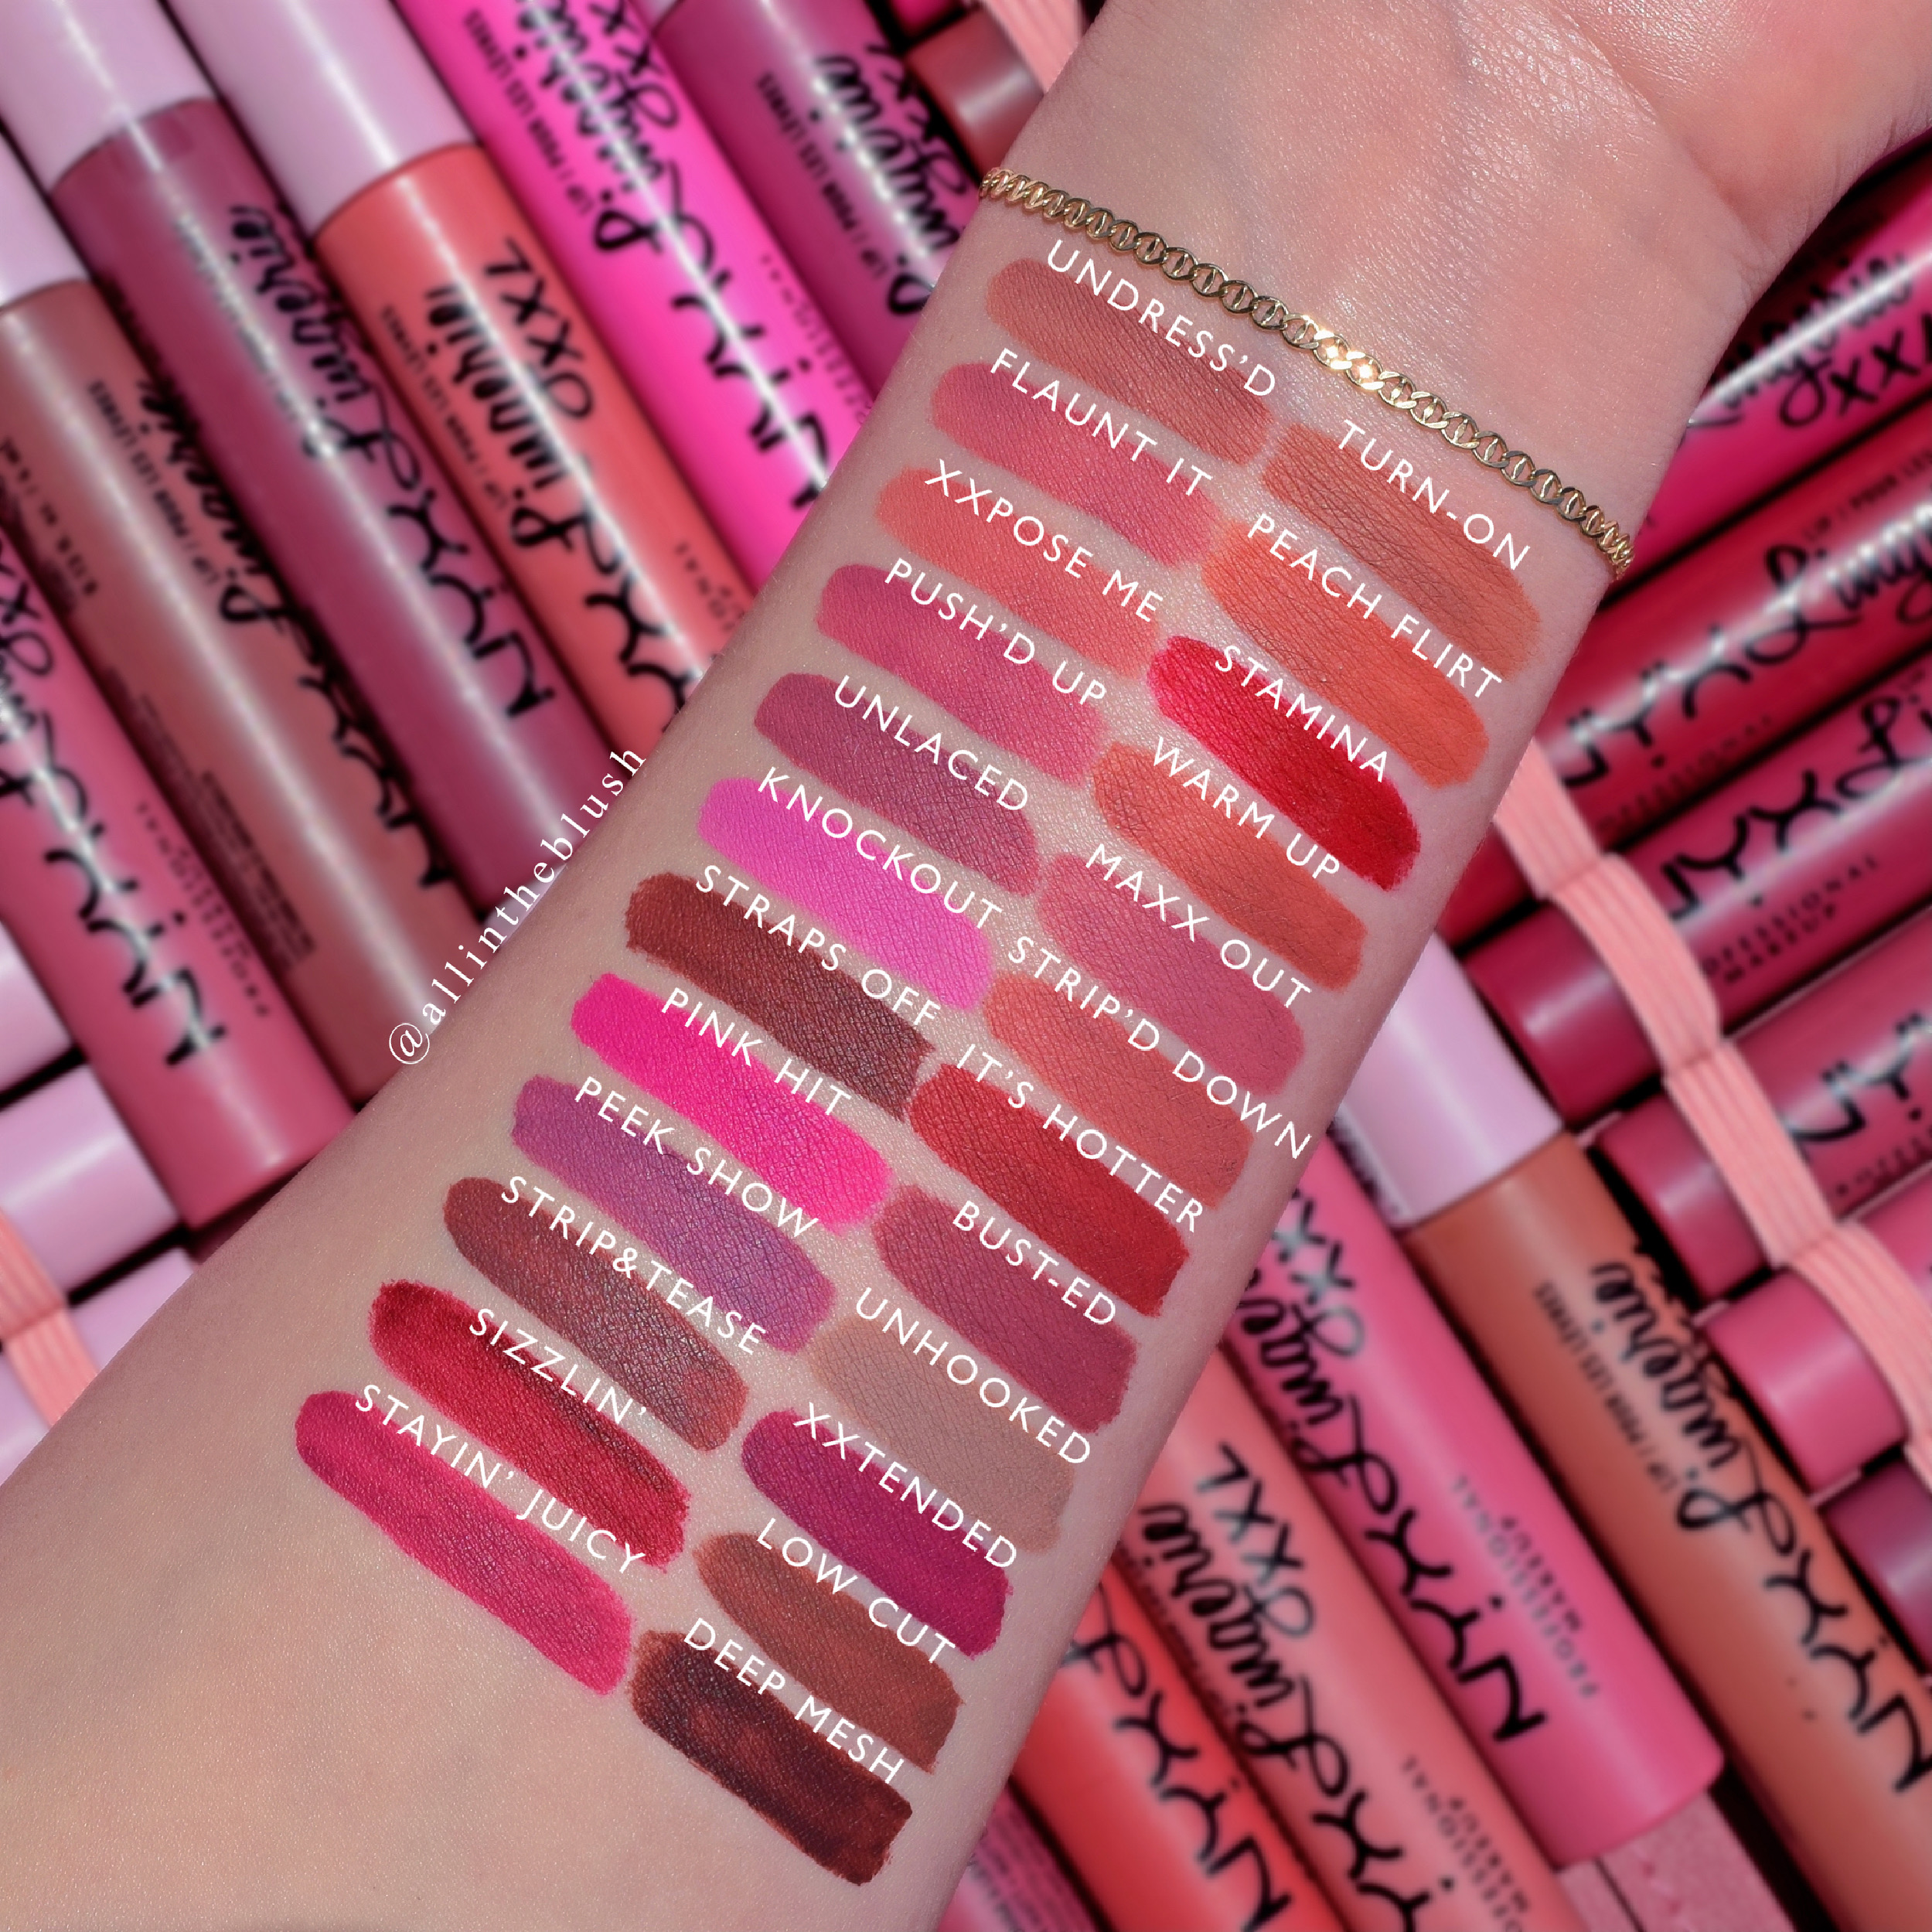 Review & Swatches of the New NYX Cosmetics Lip Lingerie XXL Long-Lasting Matte Liquid Lipstick